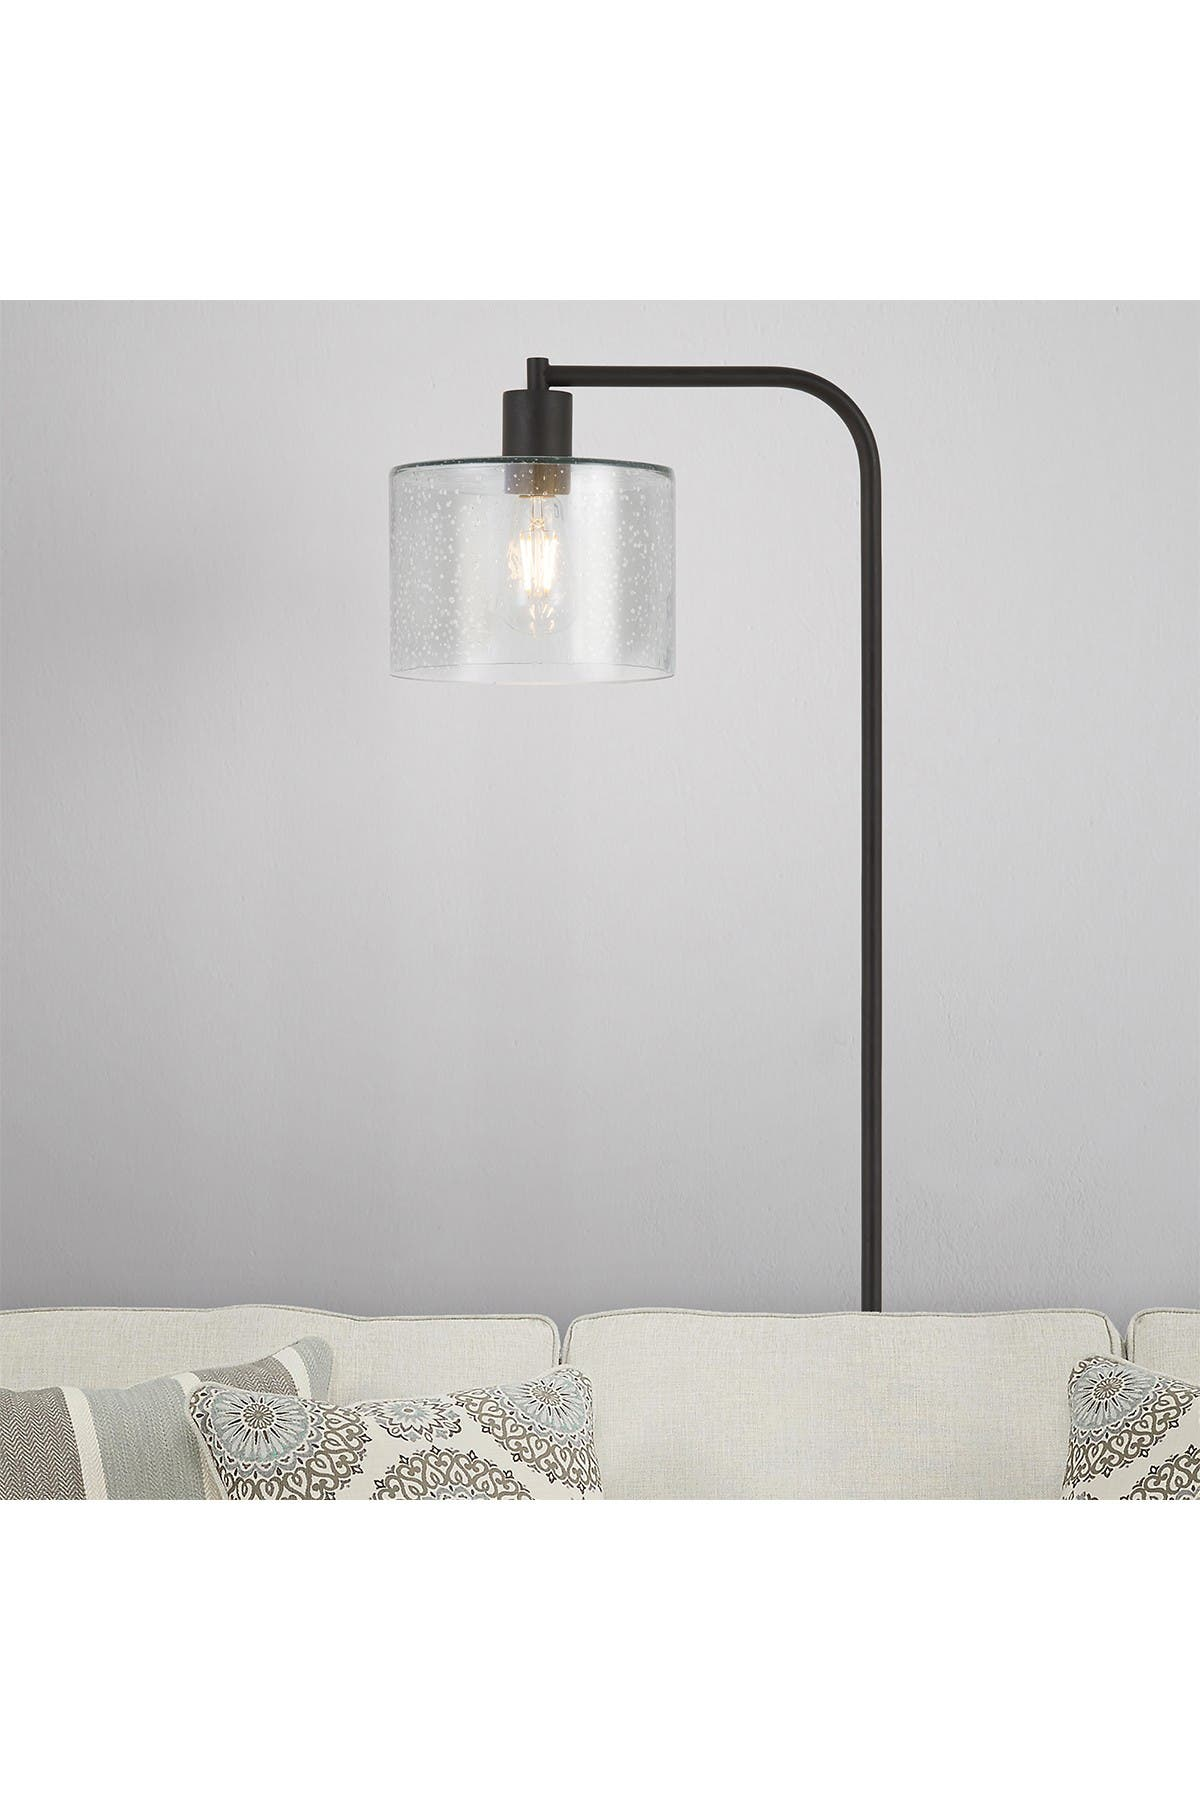 Image of Addison and Lane Cadmus Floor Lamp with Seeded Glass Shade